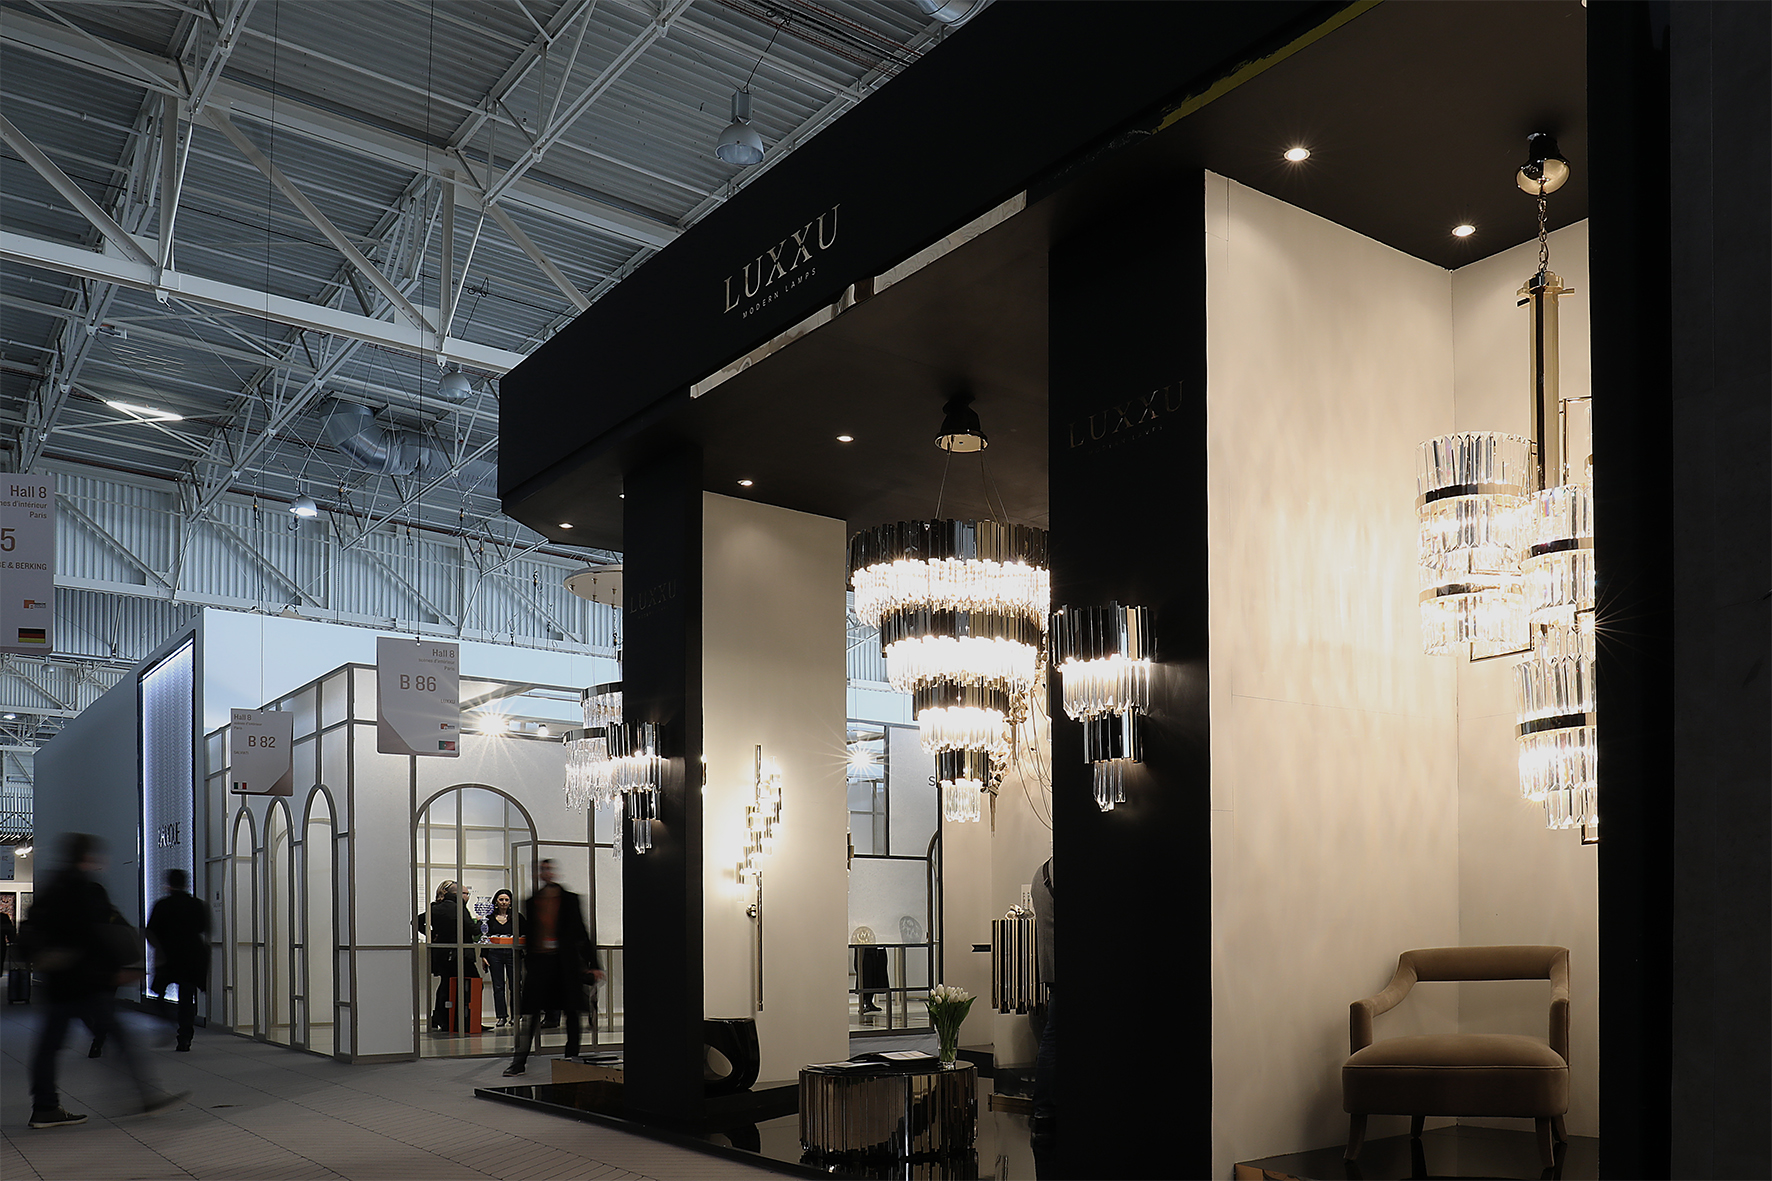 What to Expect From LUXXU at Maison et Objet 2017 luxury furniture collection 5 New Additions to Luxxu's Luxury Furniture Collection What to Expect From LUXXU at Maison et Objet 2017 5 luxury furniture collection 5 New Additions to Luxxu's Luxury Furniture Collection What to Expect From LUXXU at Maison et Objet 2017 5